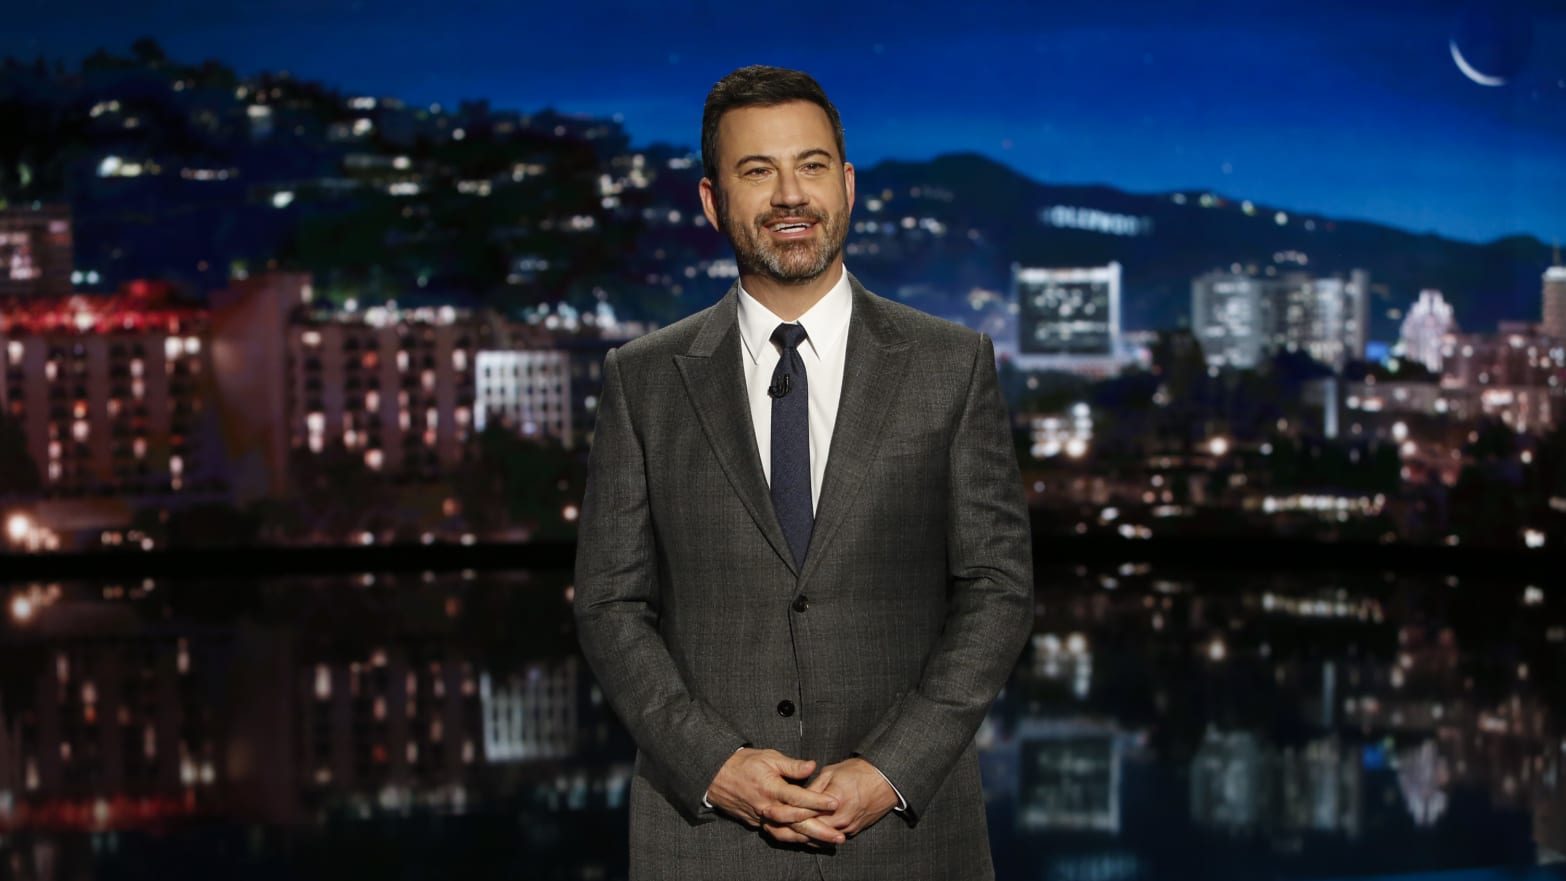 Jimmy Kimmel Roasts ABC for Canceling 'Roseanne': This Was a 'Huge Blow'